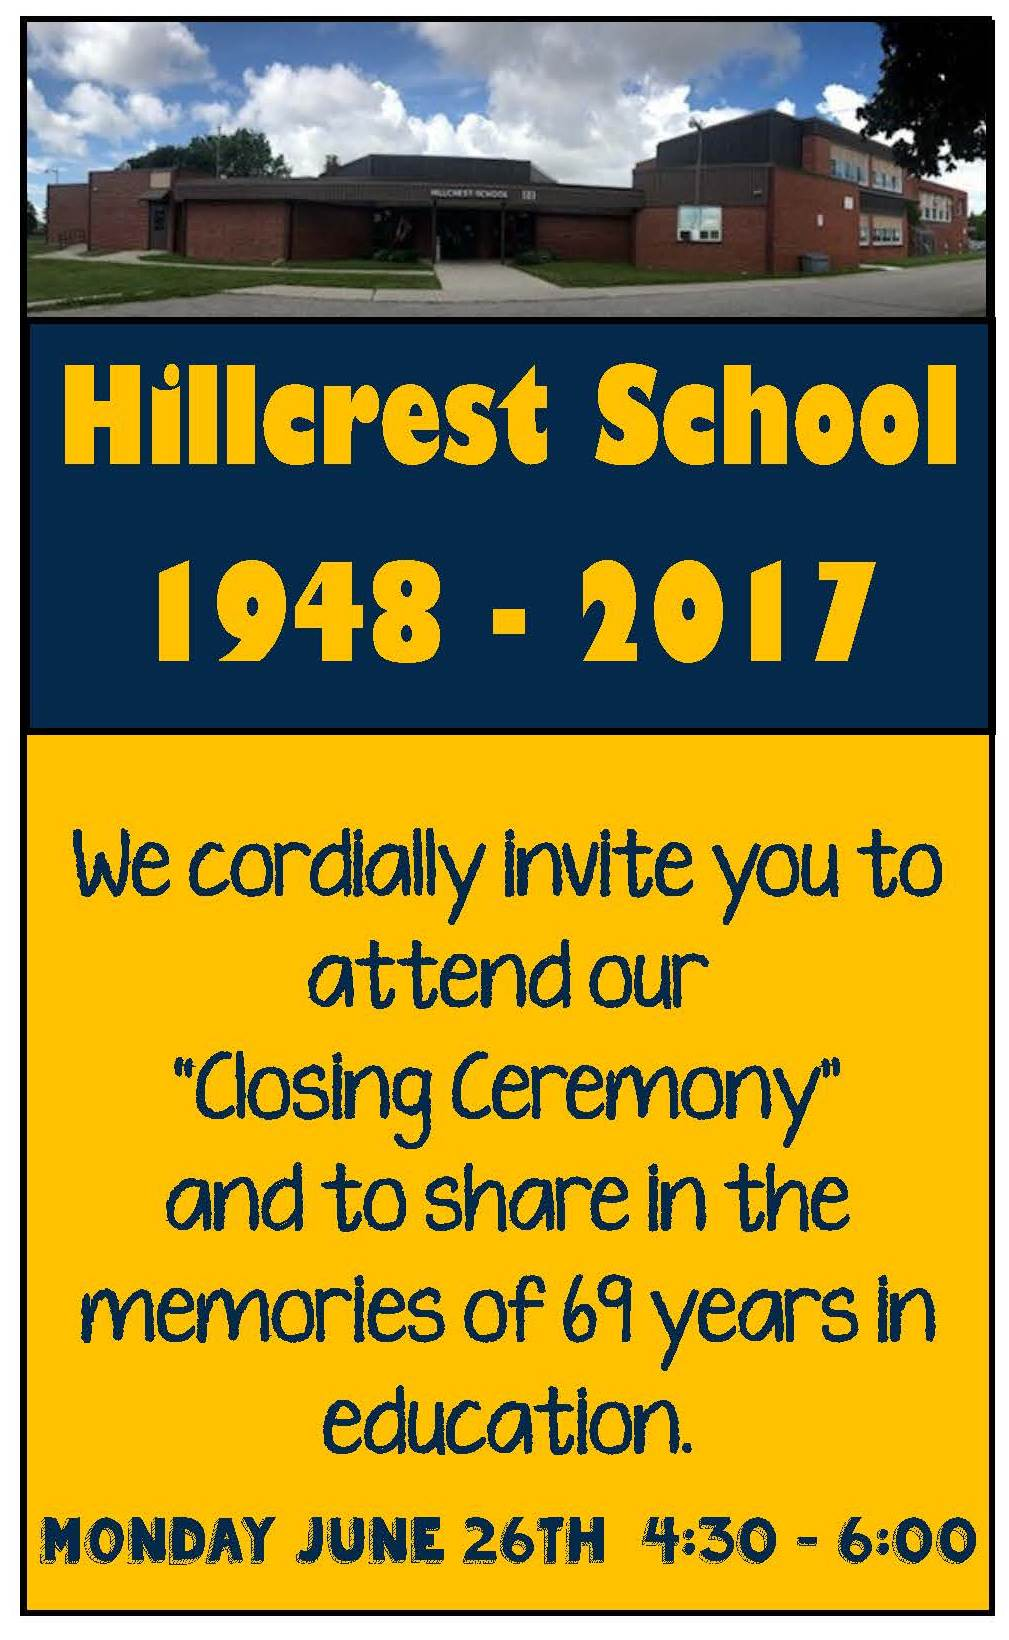 All are invited to the closing ceremony for Hillcrest School.